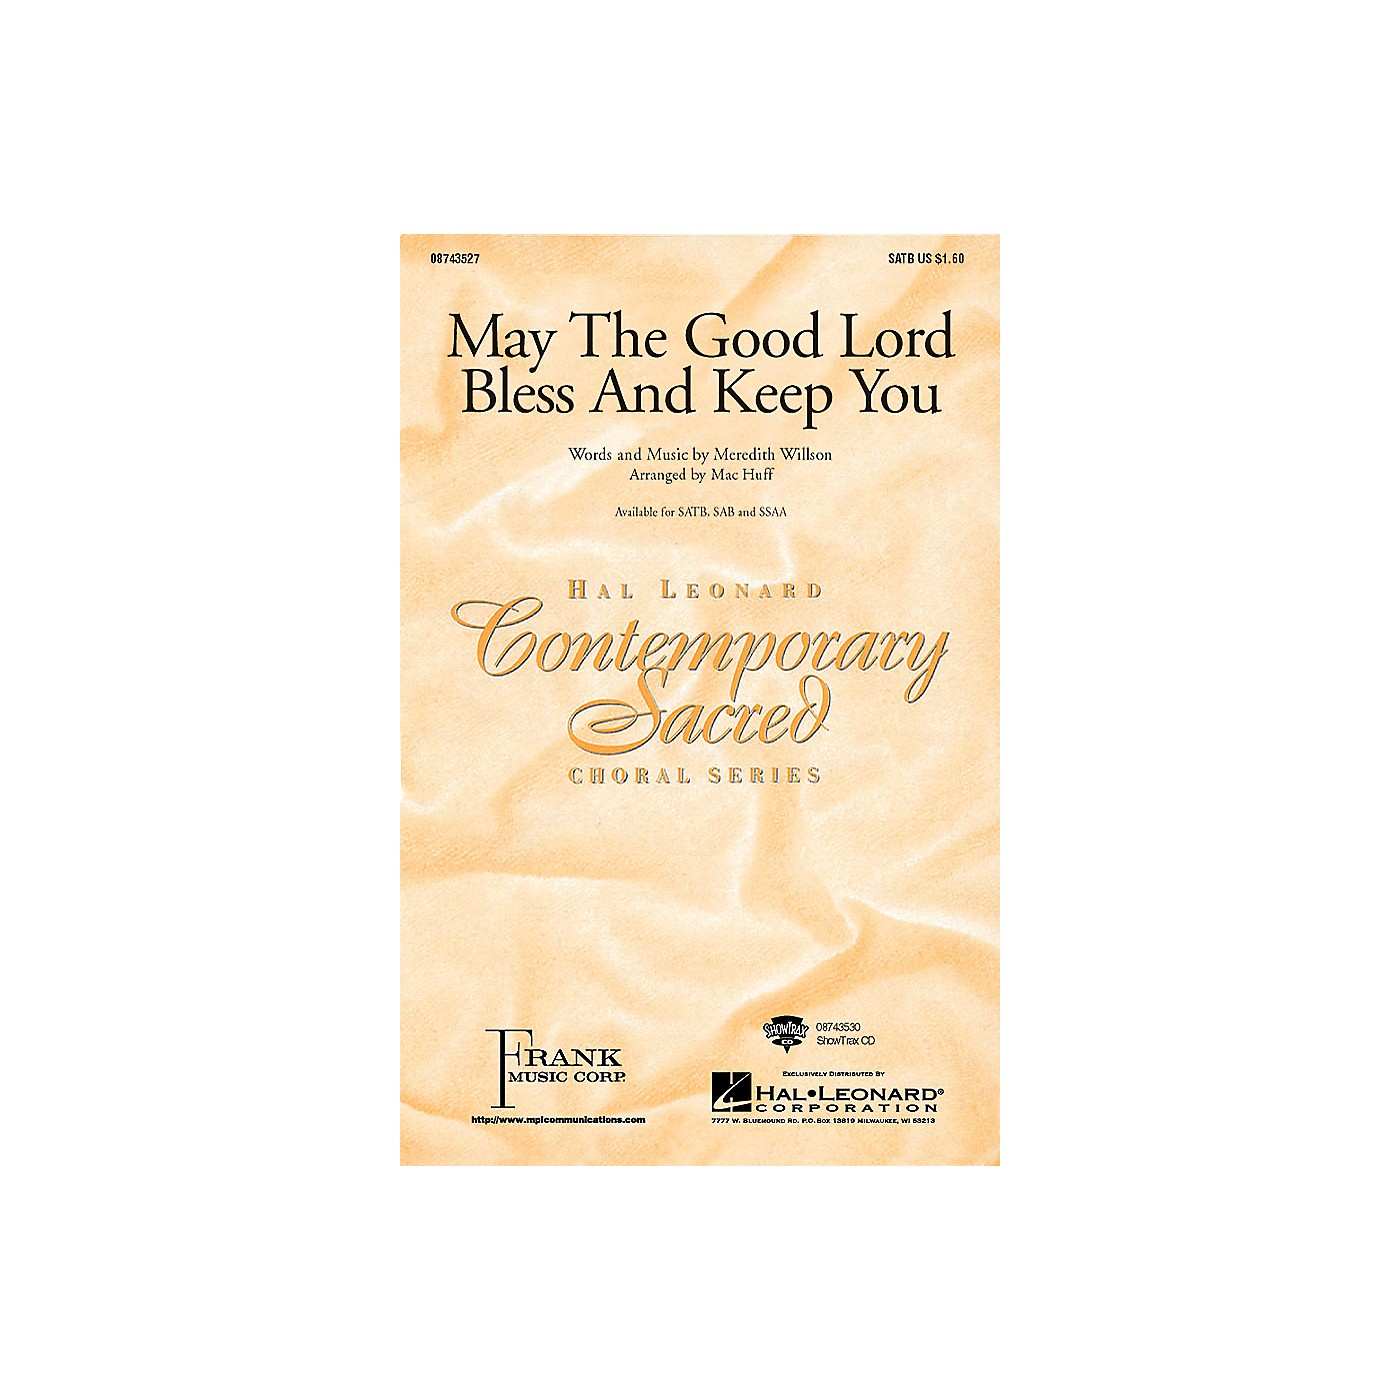 Hal Leonard May the Good Lord Bless and Keep You SSAA Arranged by Mac Huff thumbnail